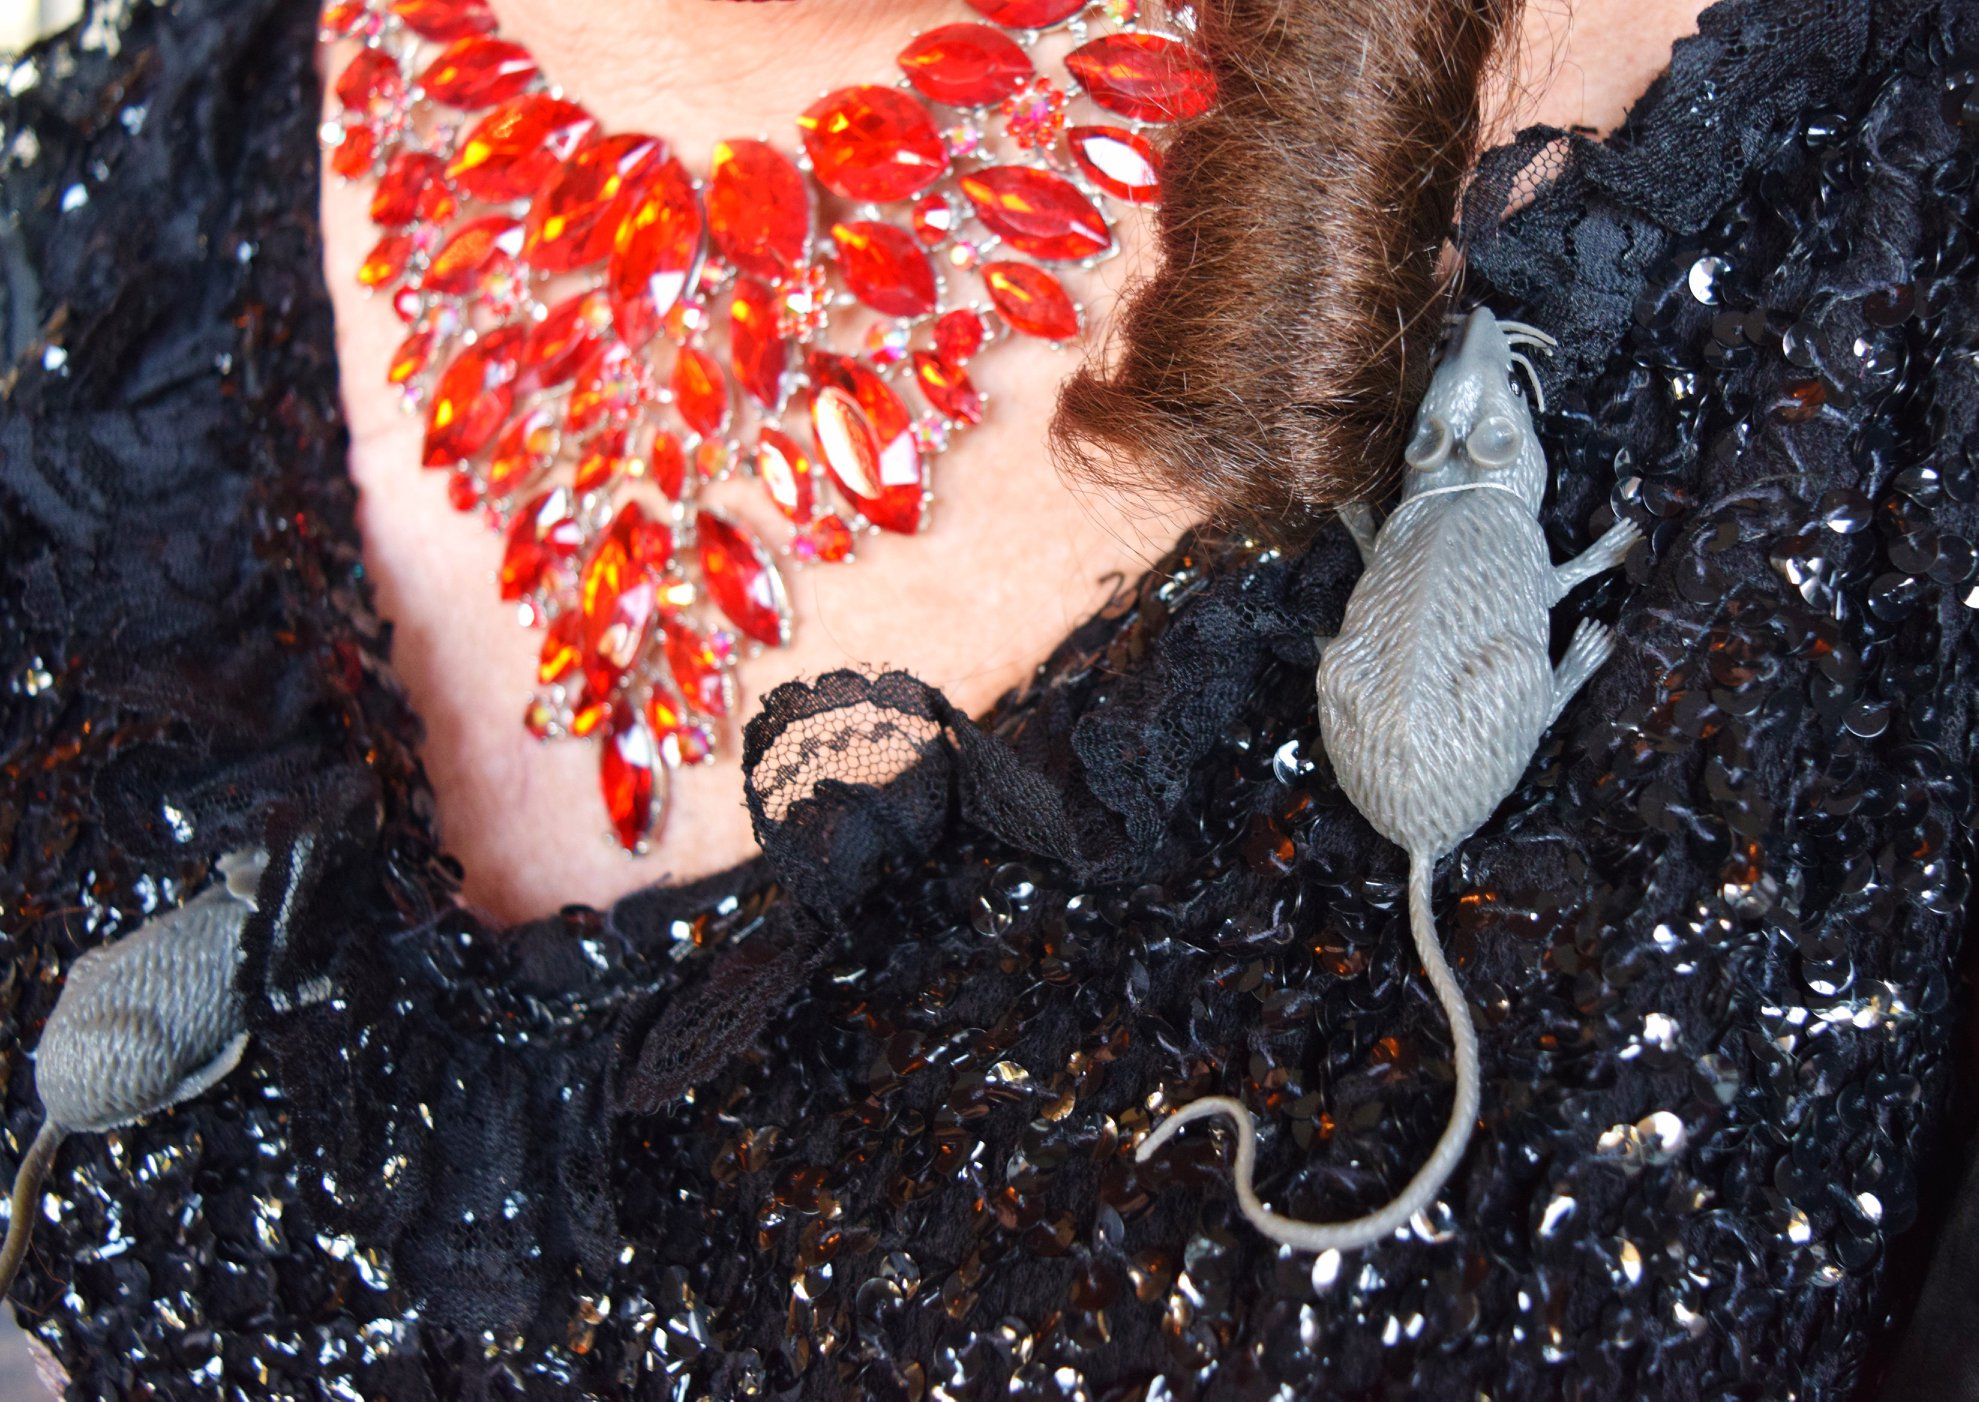 Masquerade Ball - I smell a rat